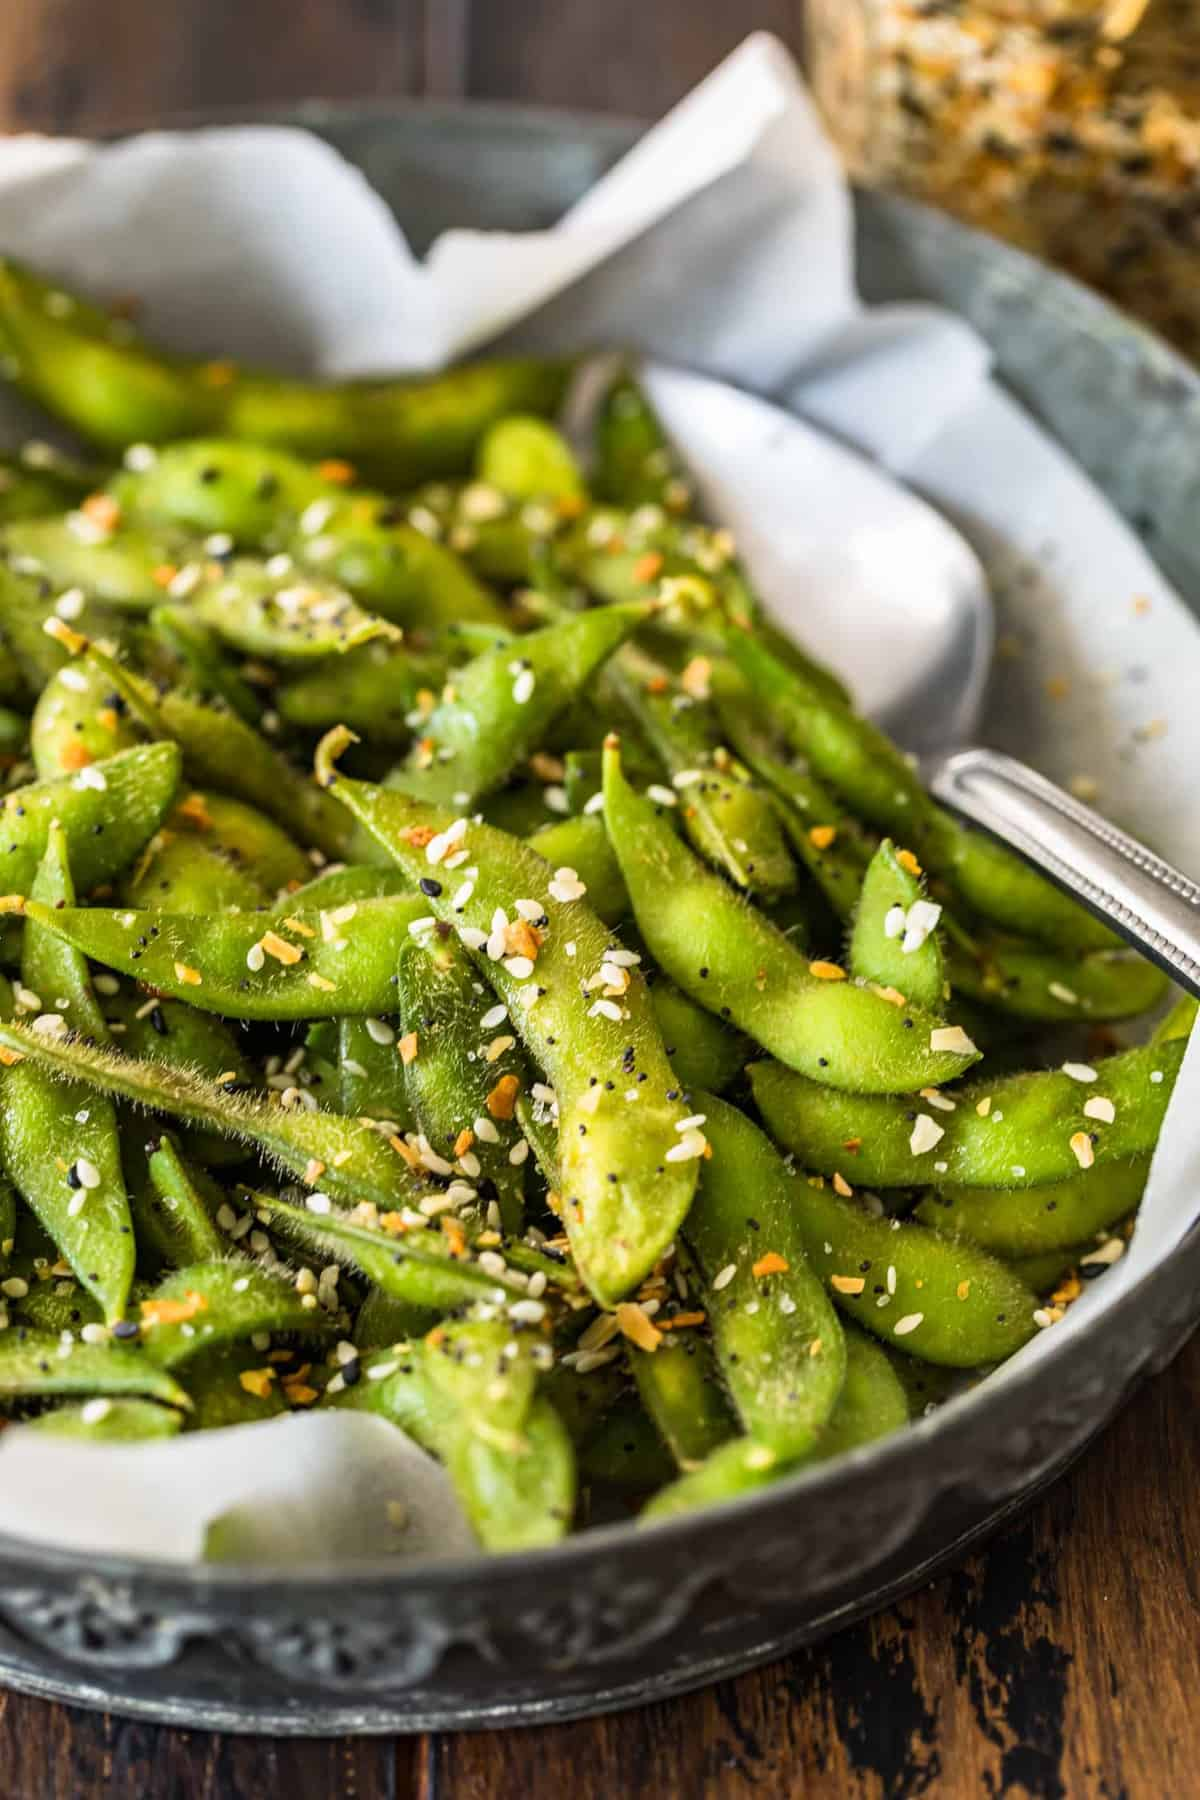 A close up view of edamame with spoon